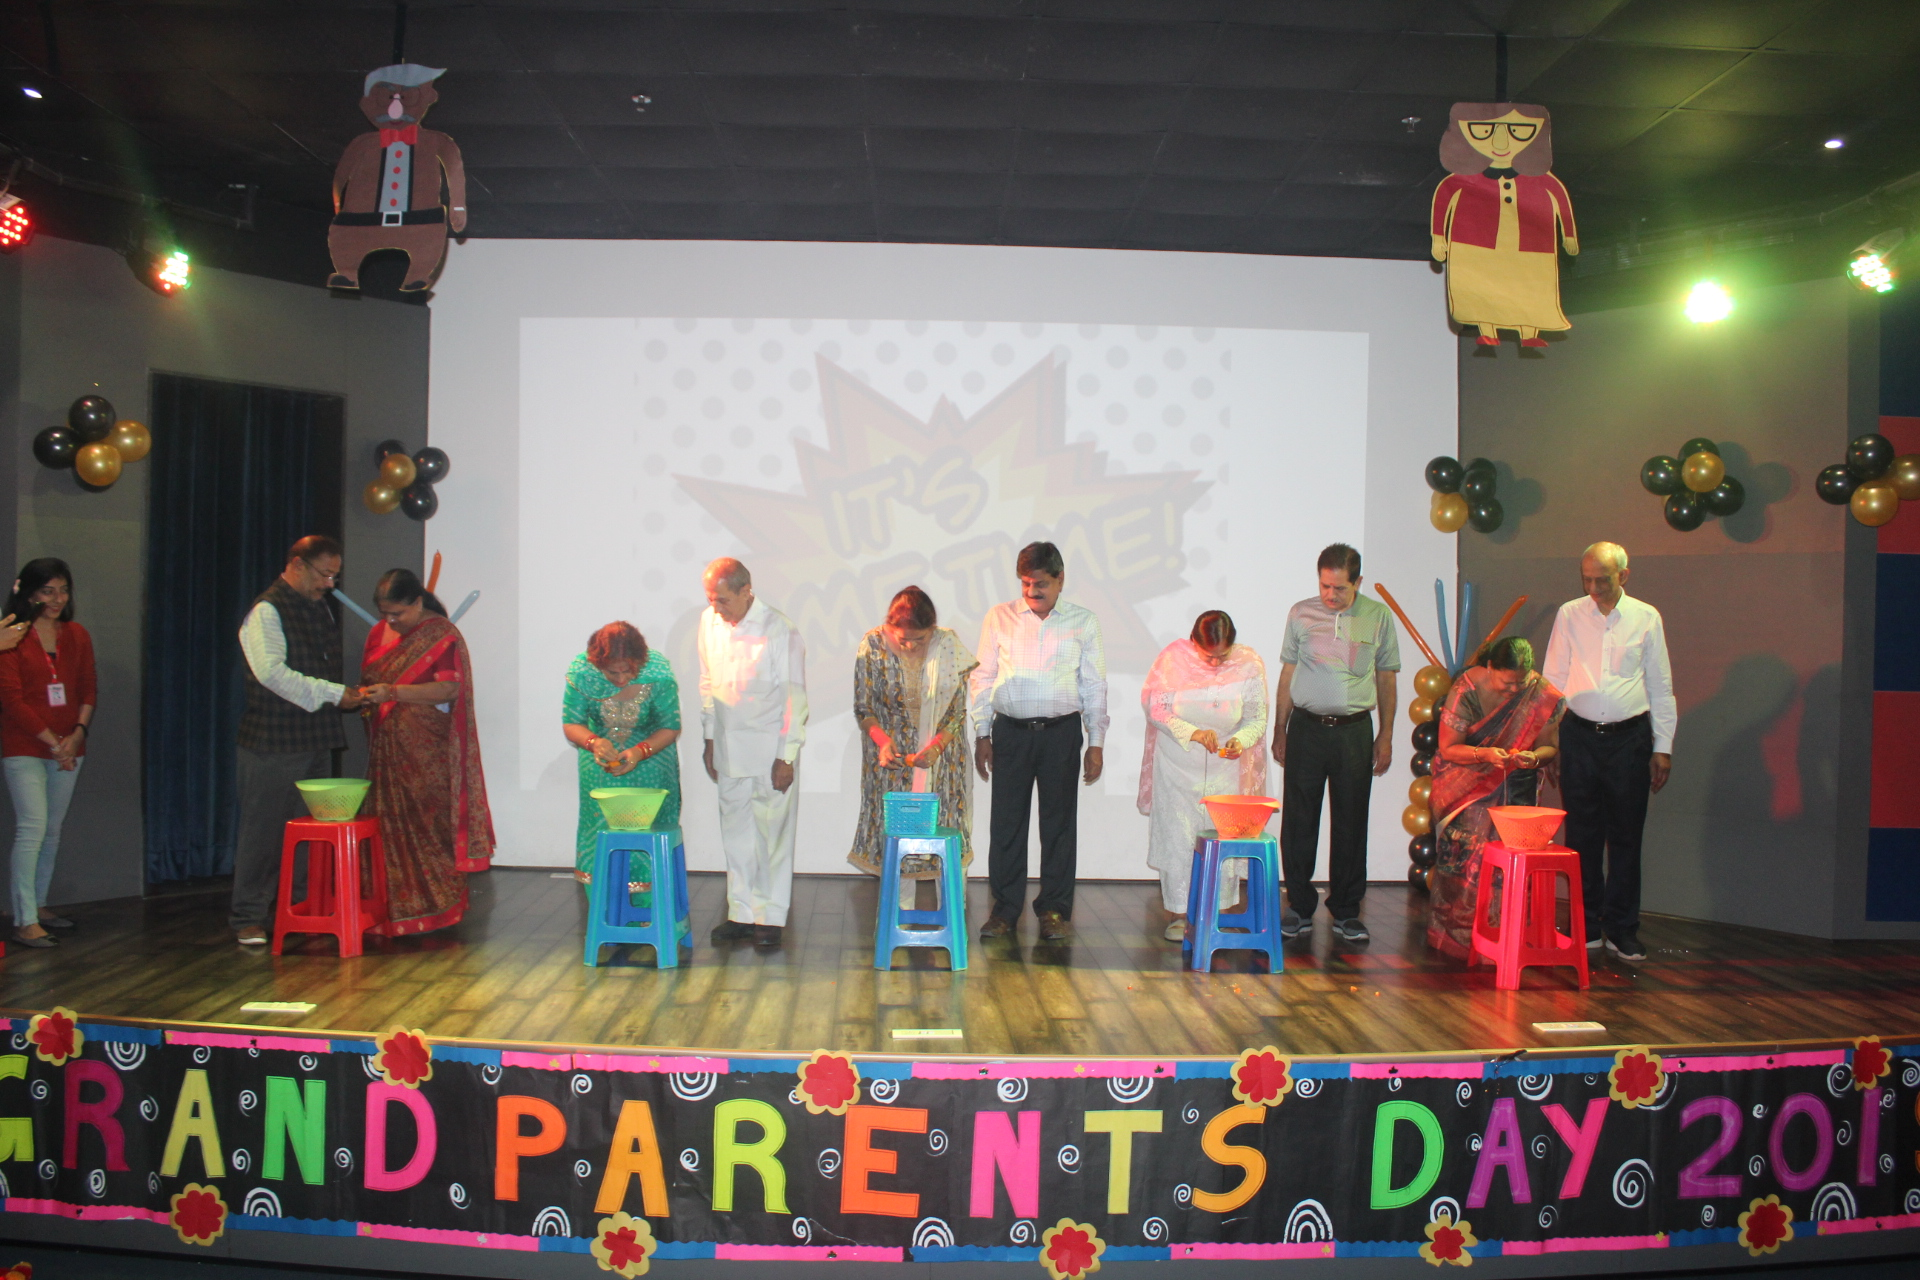 Grandparents Day Celebration image